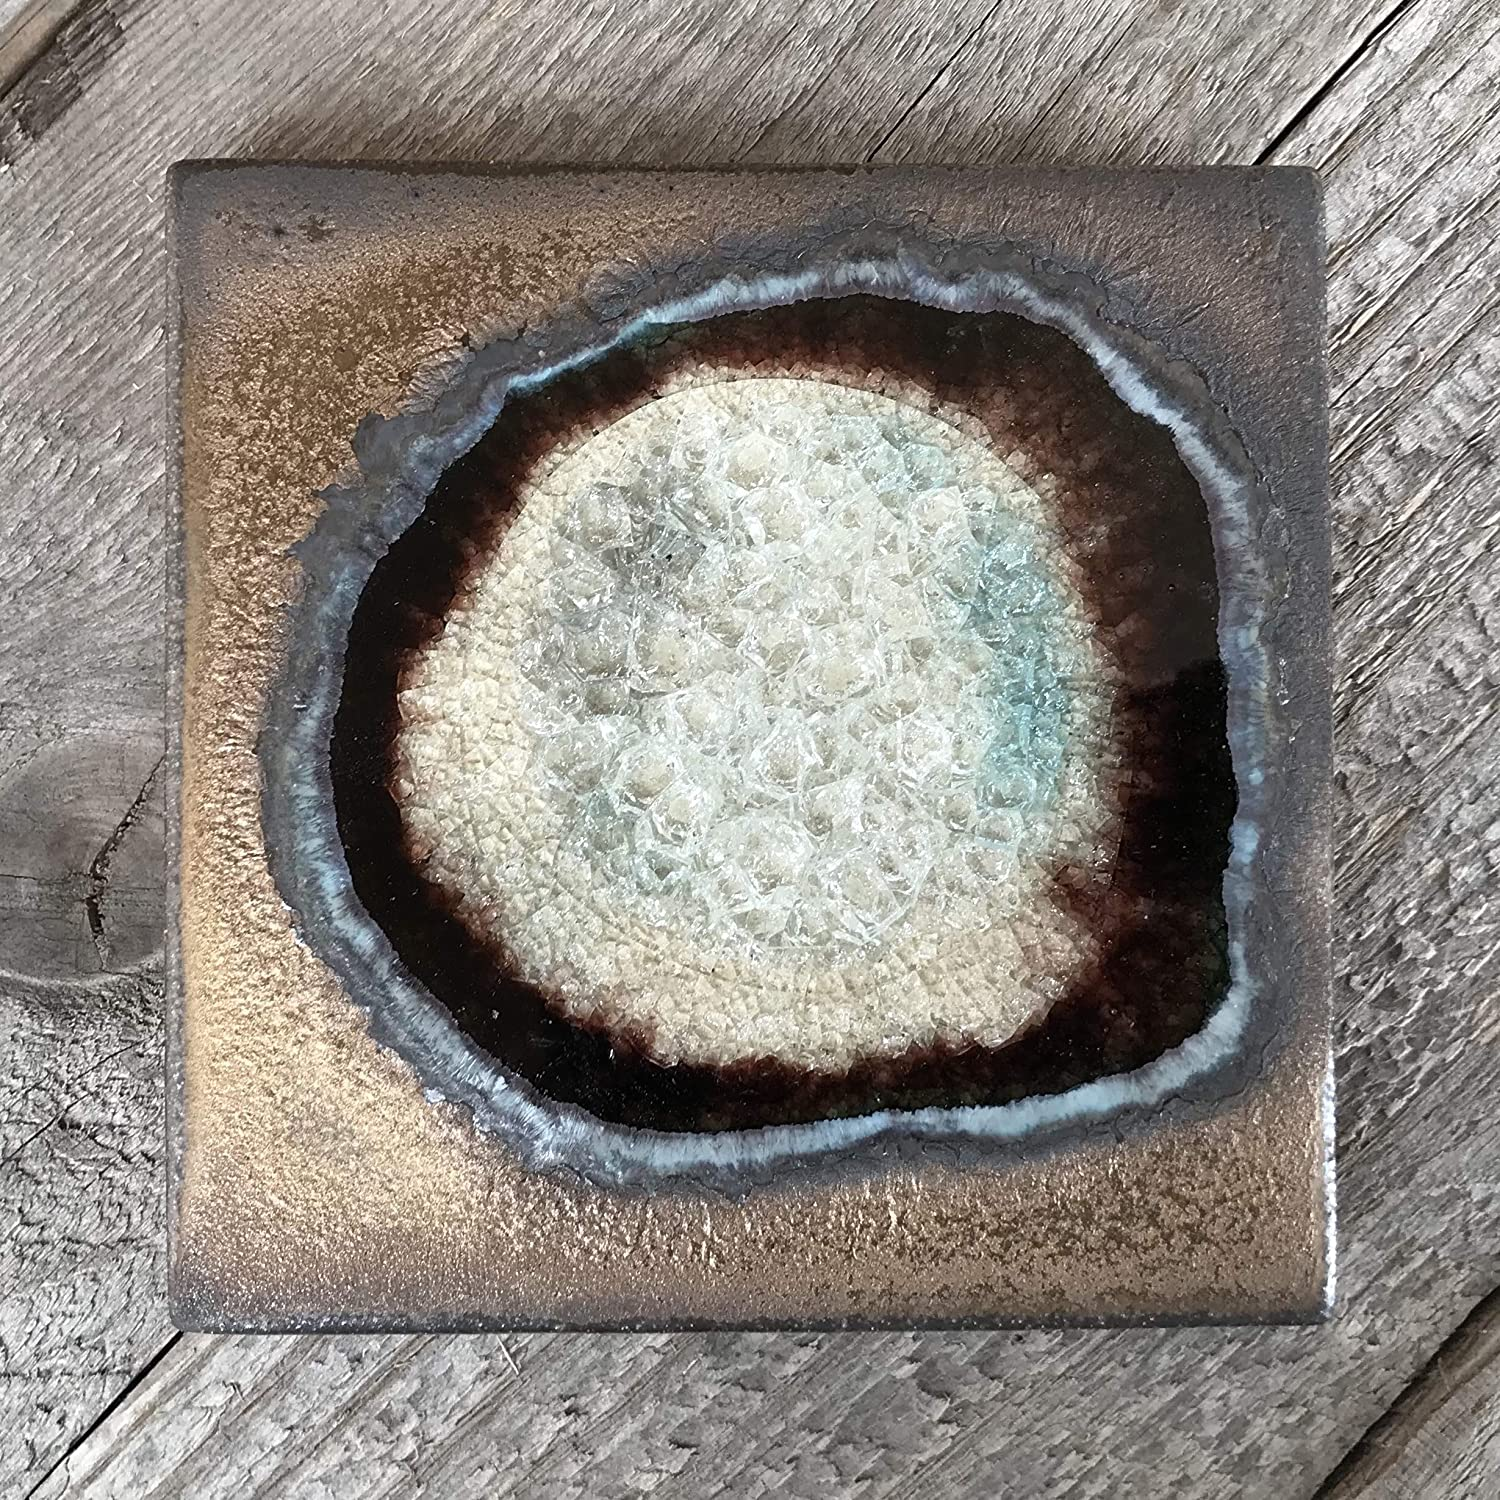 Geode Crackle Coaster in BRONZE: Individual Coaster, Geode Coaster, Agate Coaster, Fused Glass Coaster, Crackle Glass Coaster, Dock 6 Pottery Coaster, Dock 6 Pottery, Kerry Brooks Pottery